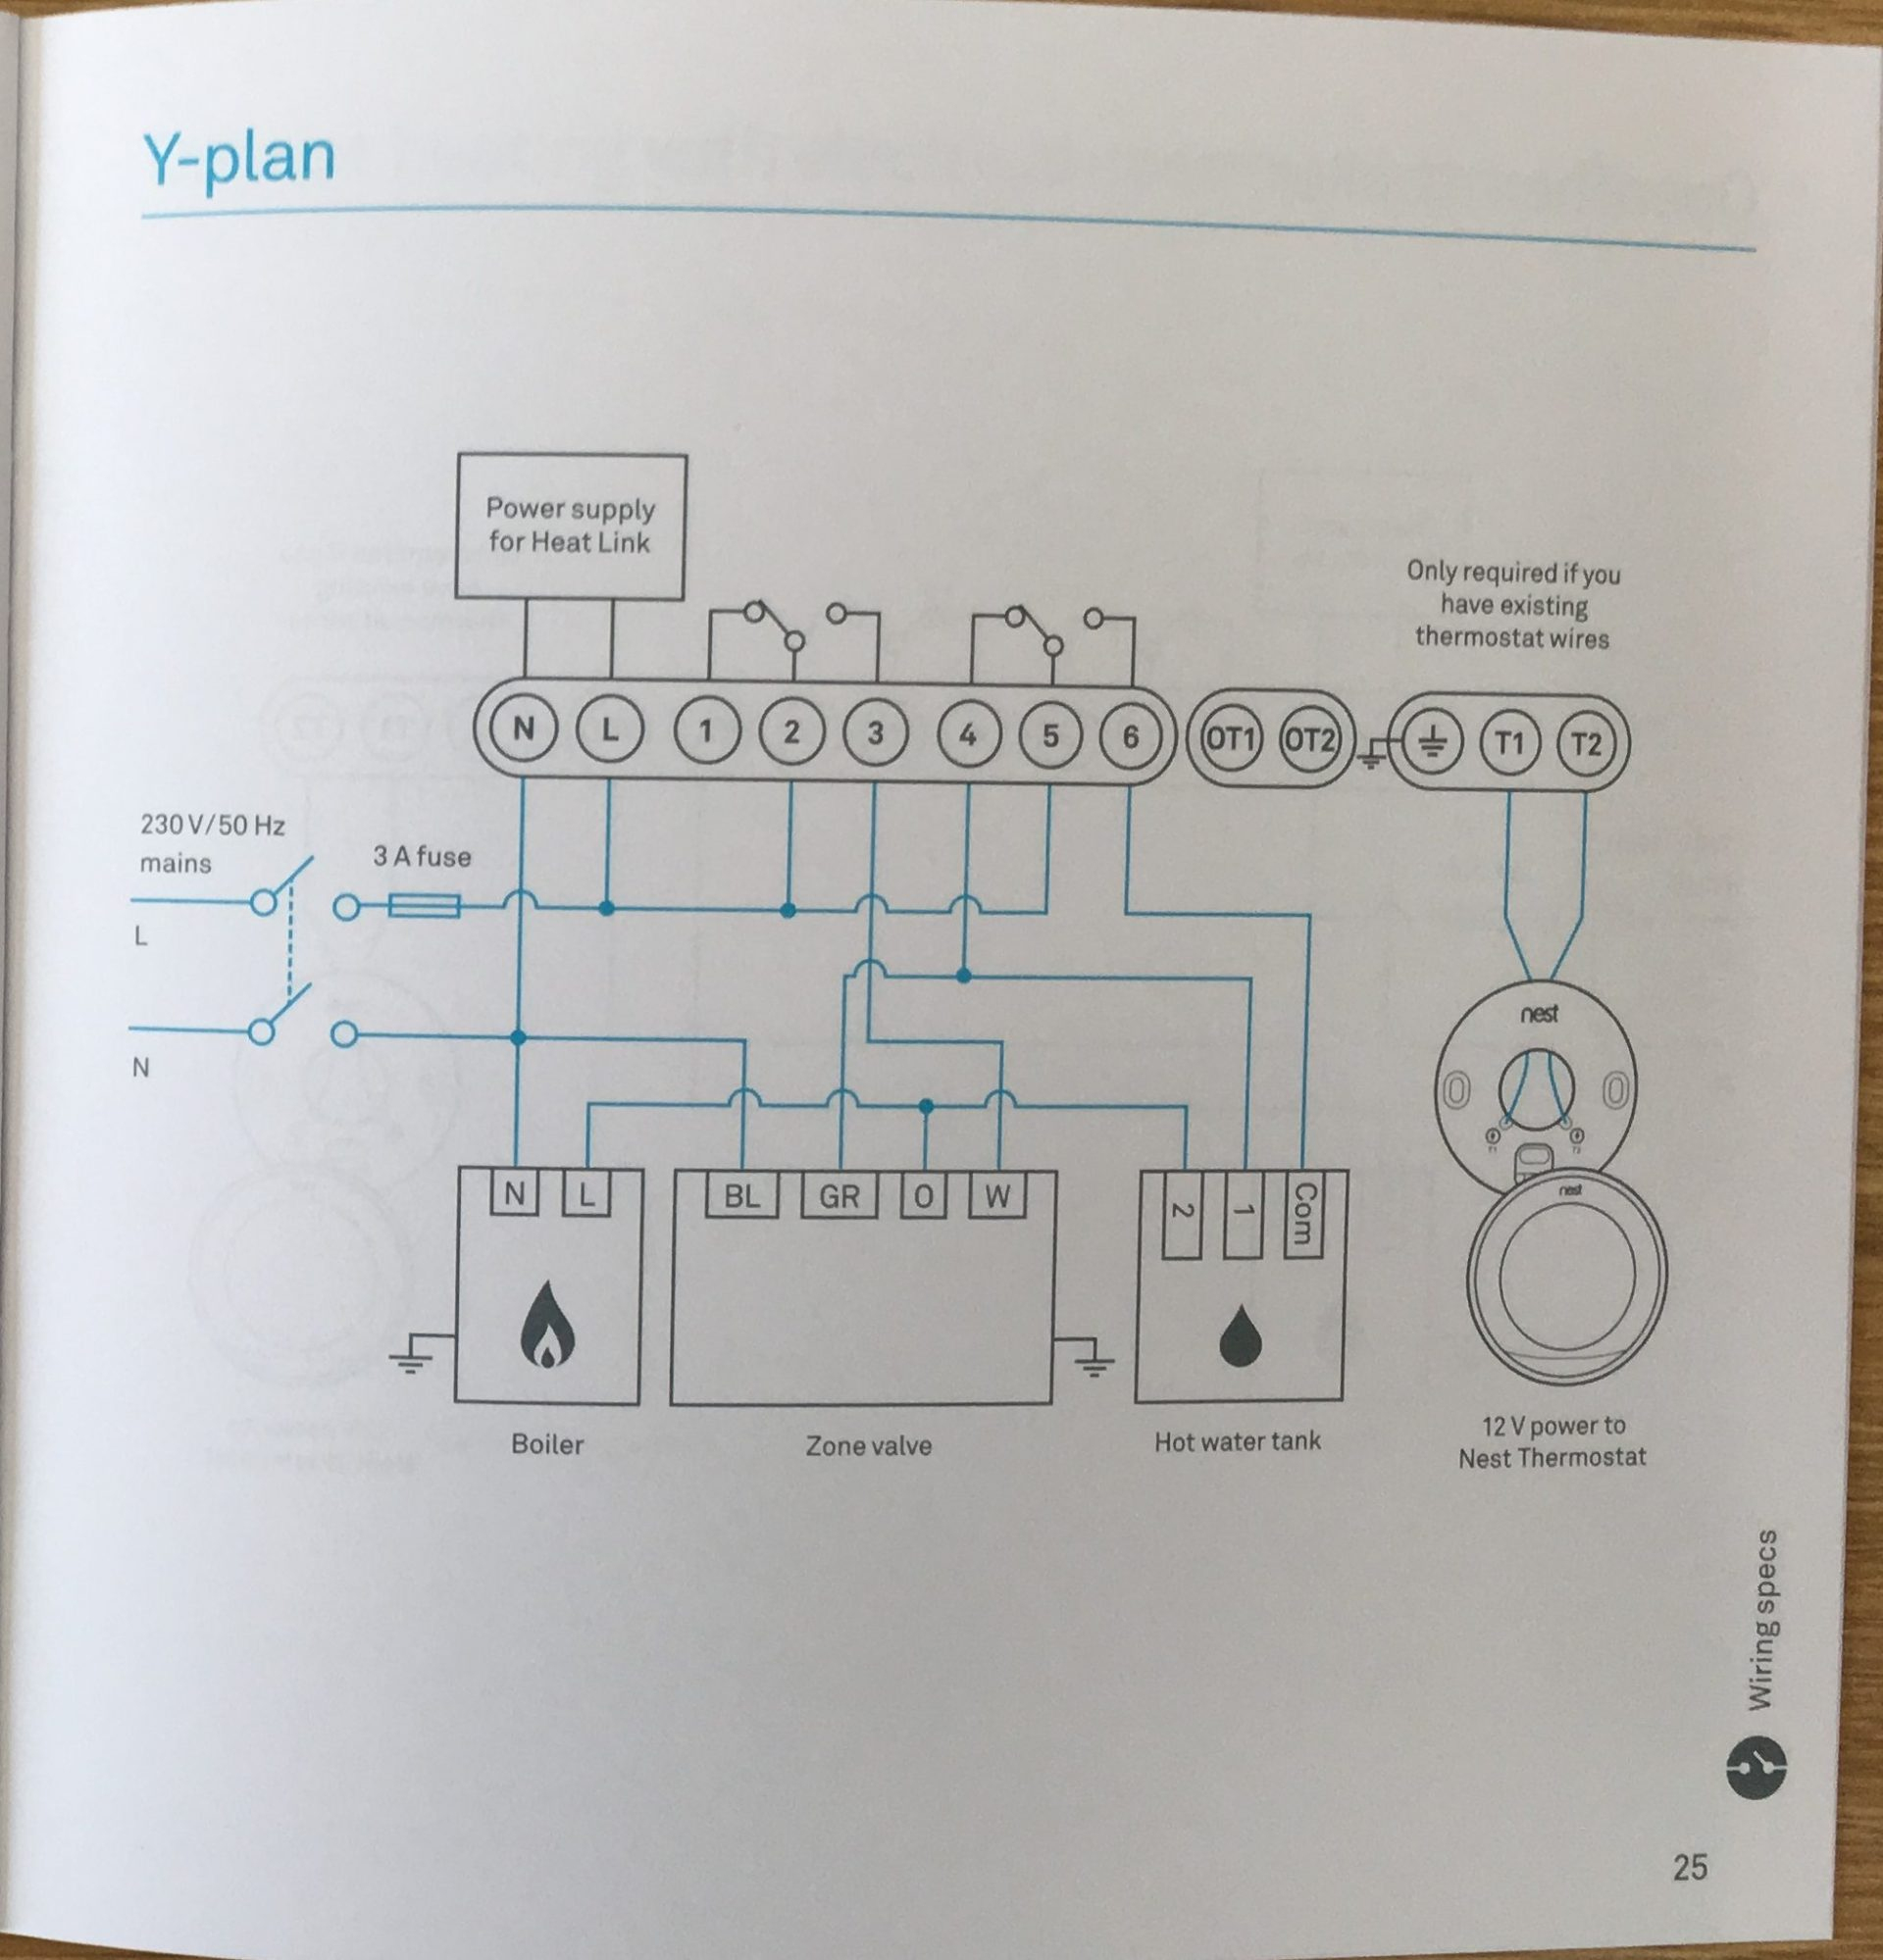 How To Install The Nest Learning Thermostat (3Rd Gen) In A Y-Plan - Nest Wiring Diagram For S Plan